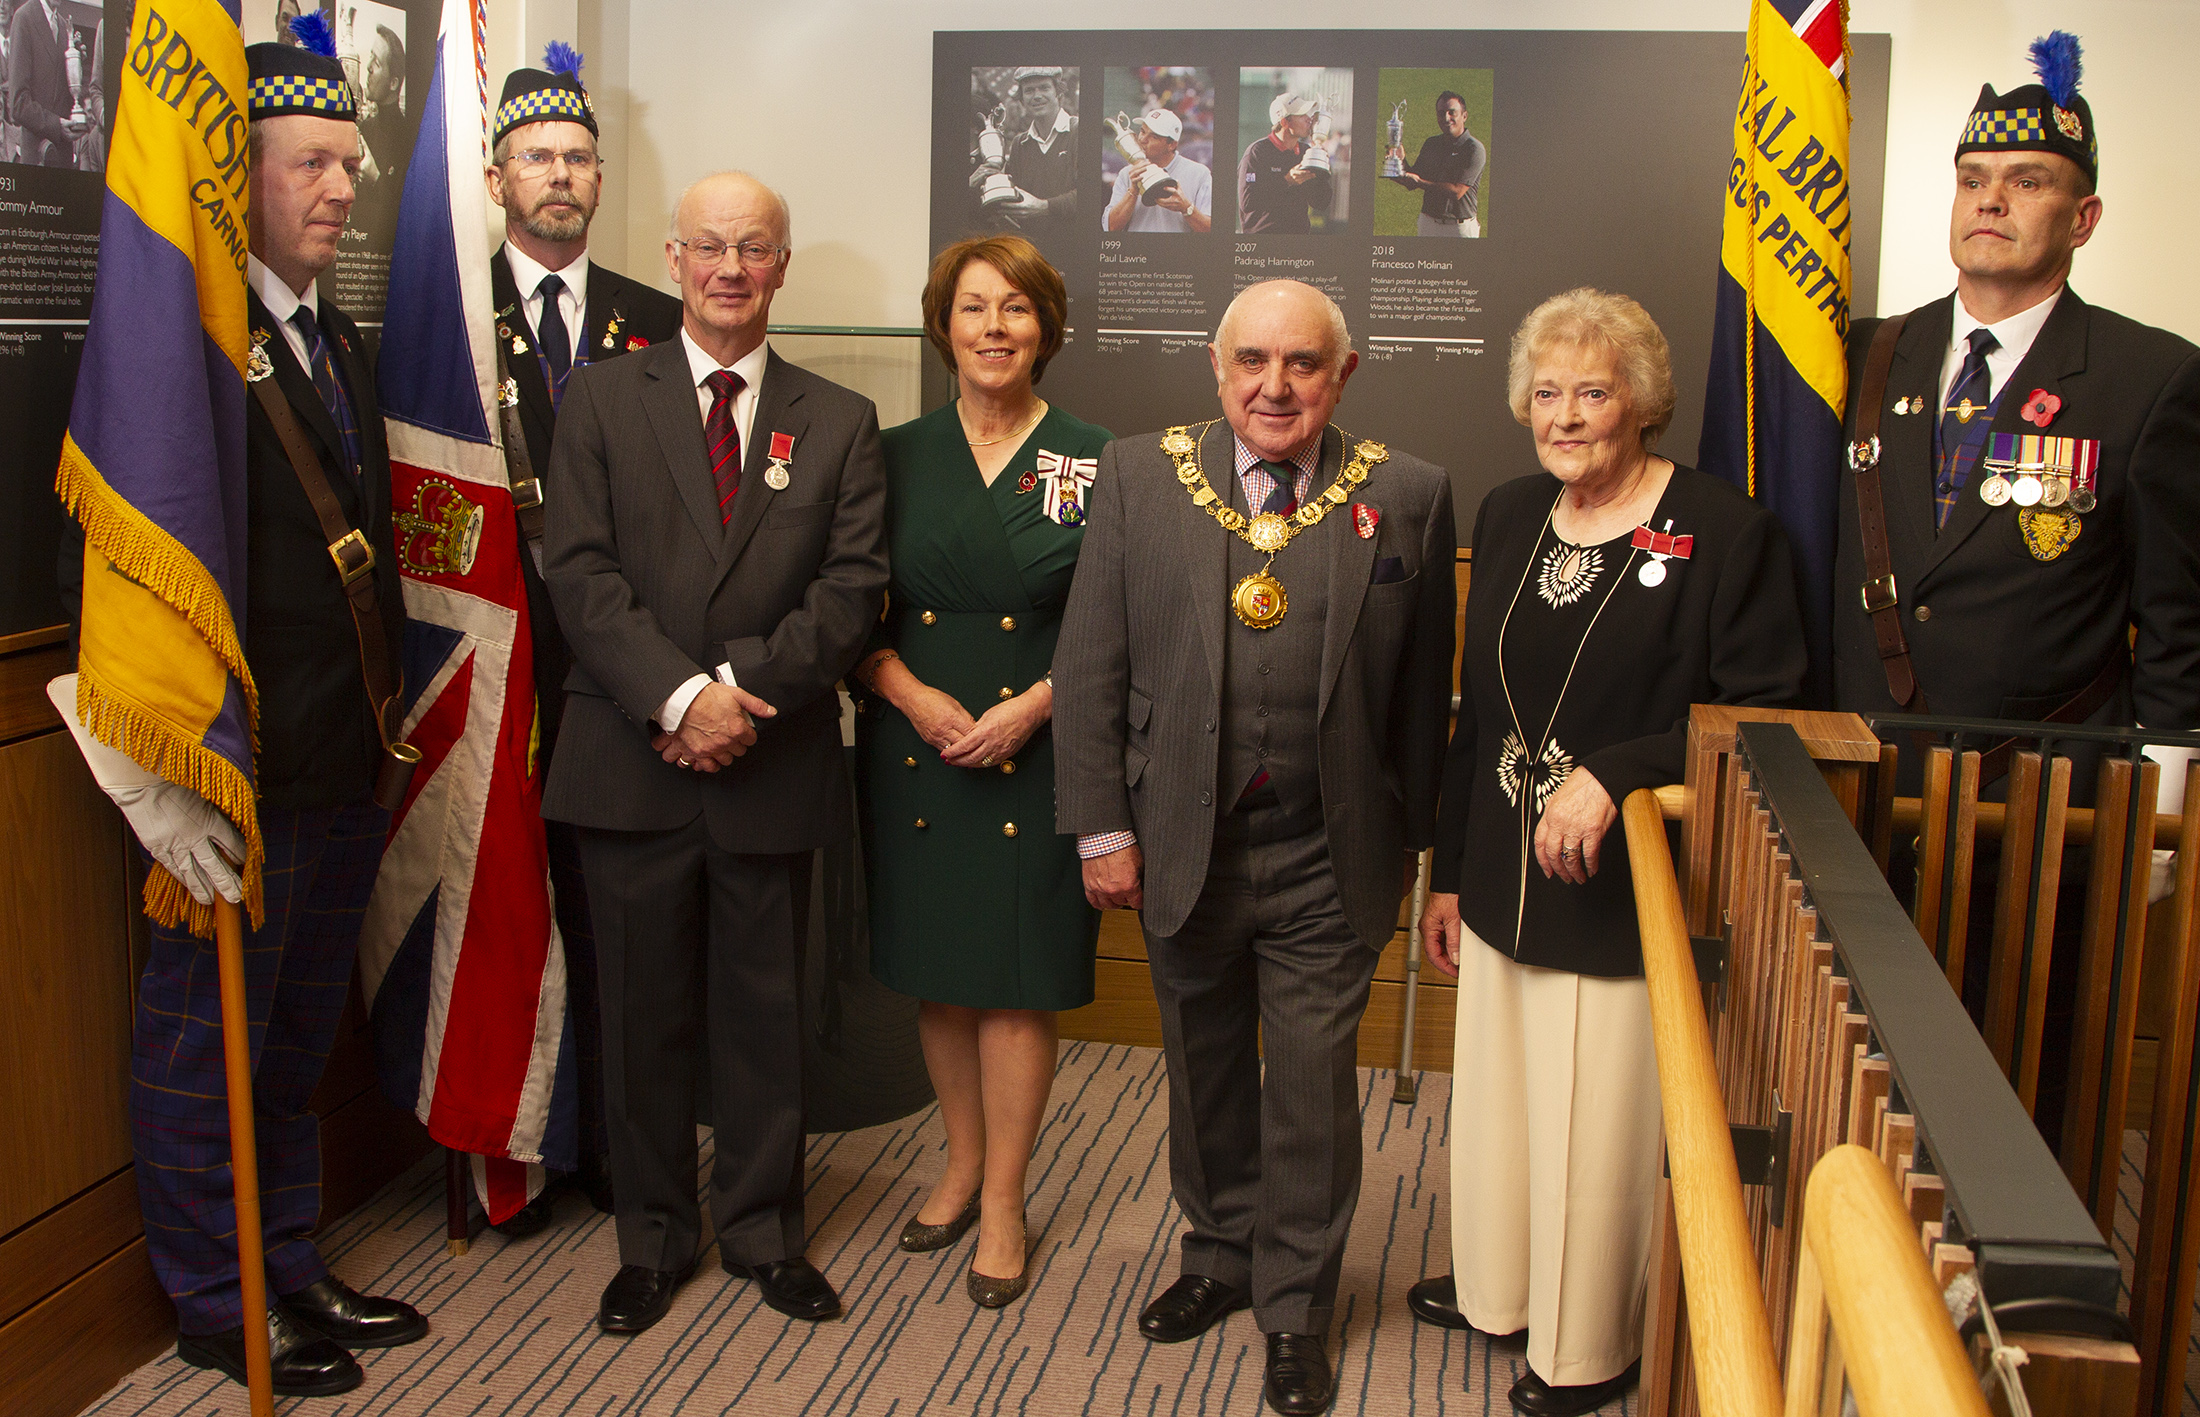 Mike Roberston and Kirsty Macdonald with Angus Lord Lieutenant Pat Sawers and Provost of Angus Ronnie Proctor along with British Legion Standard Bearers Callum Copland, Paul Thomson and Rab Cumming.